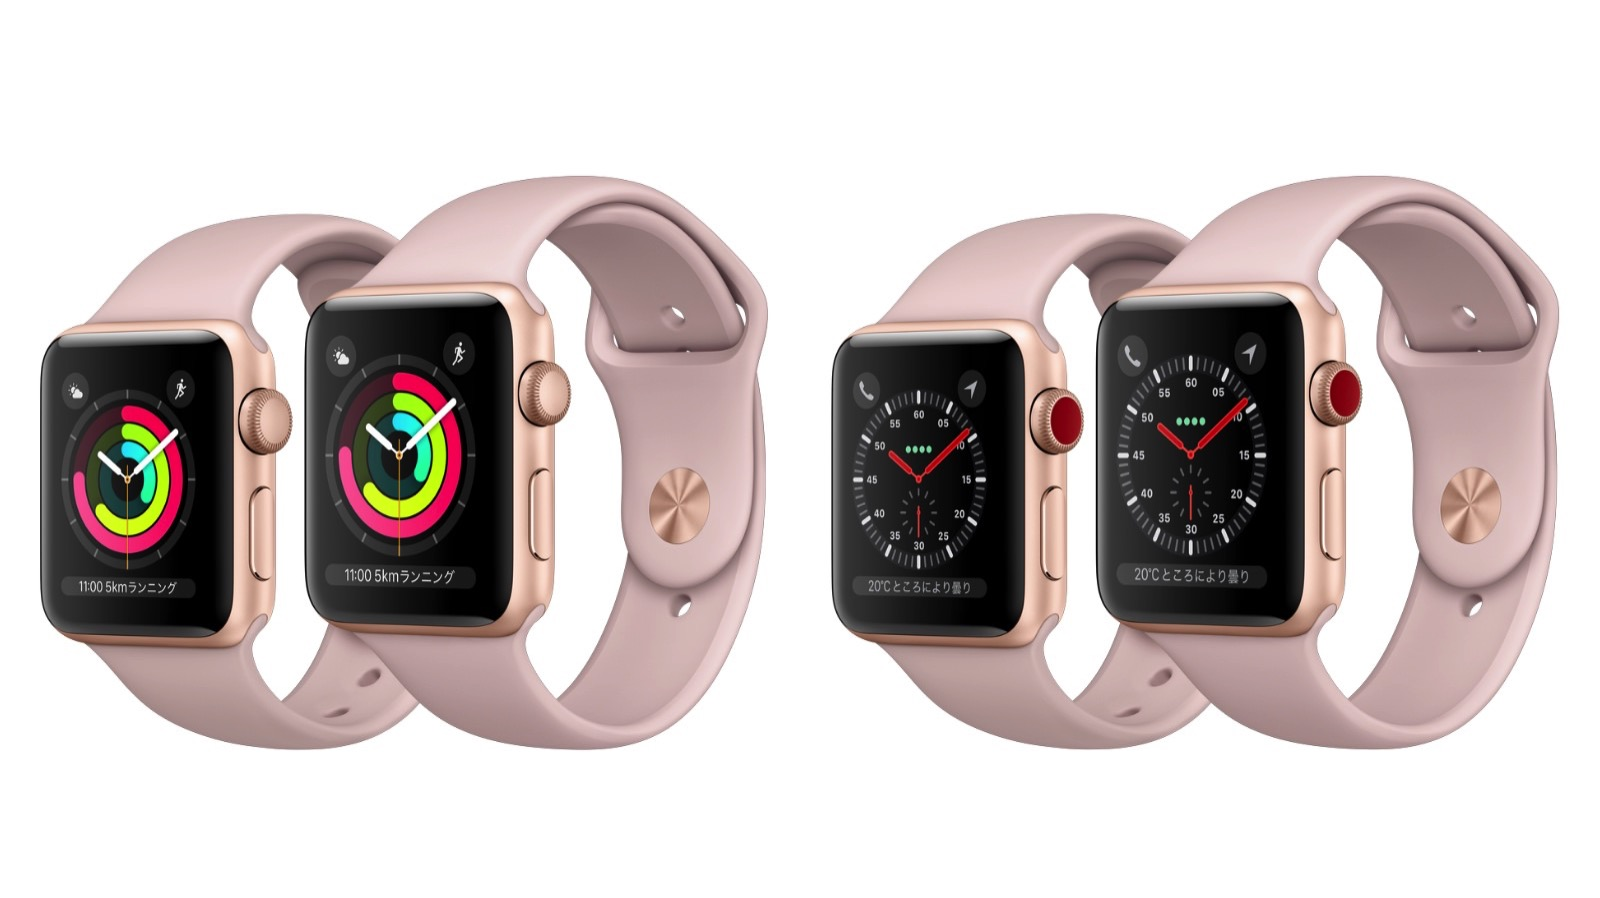 Apple Watch Series 3 gold model